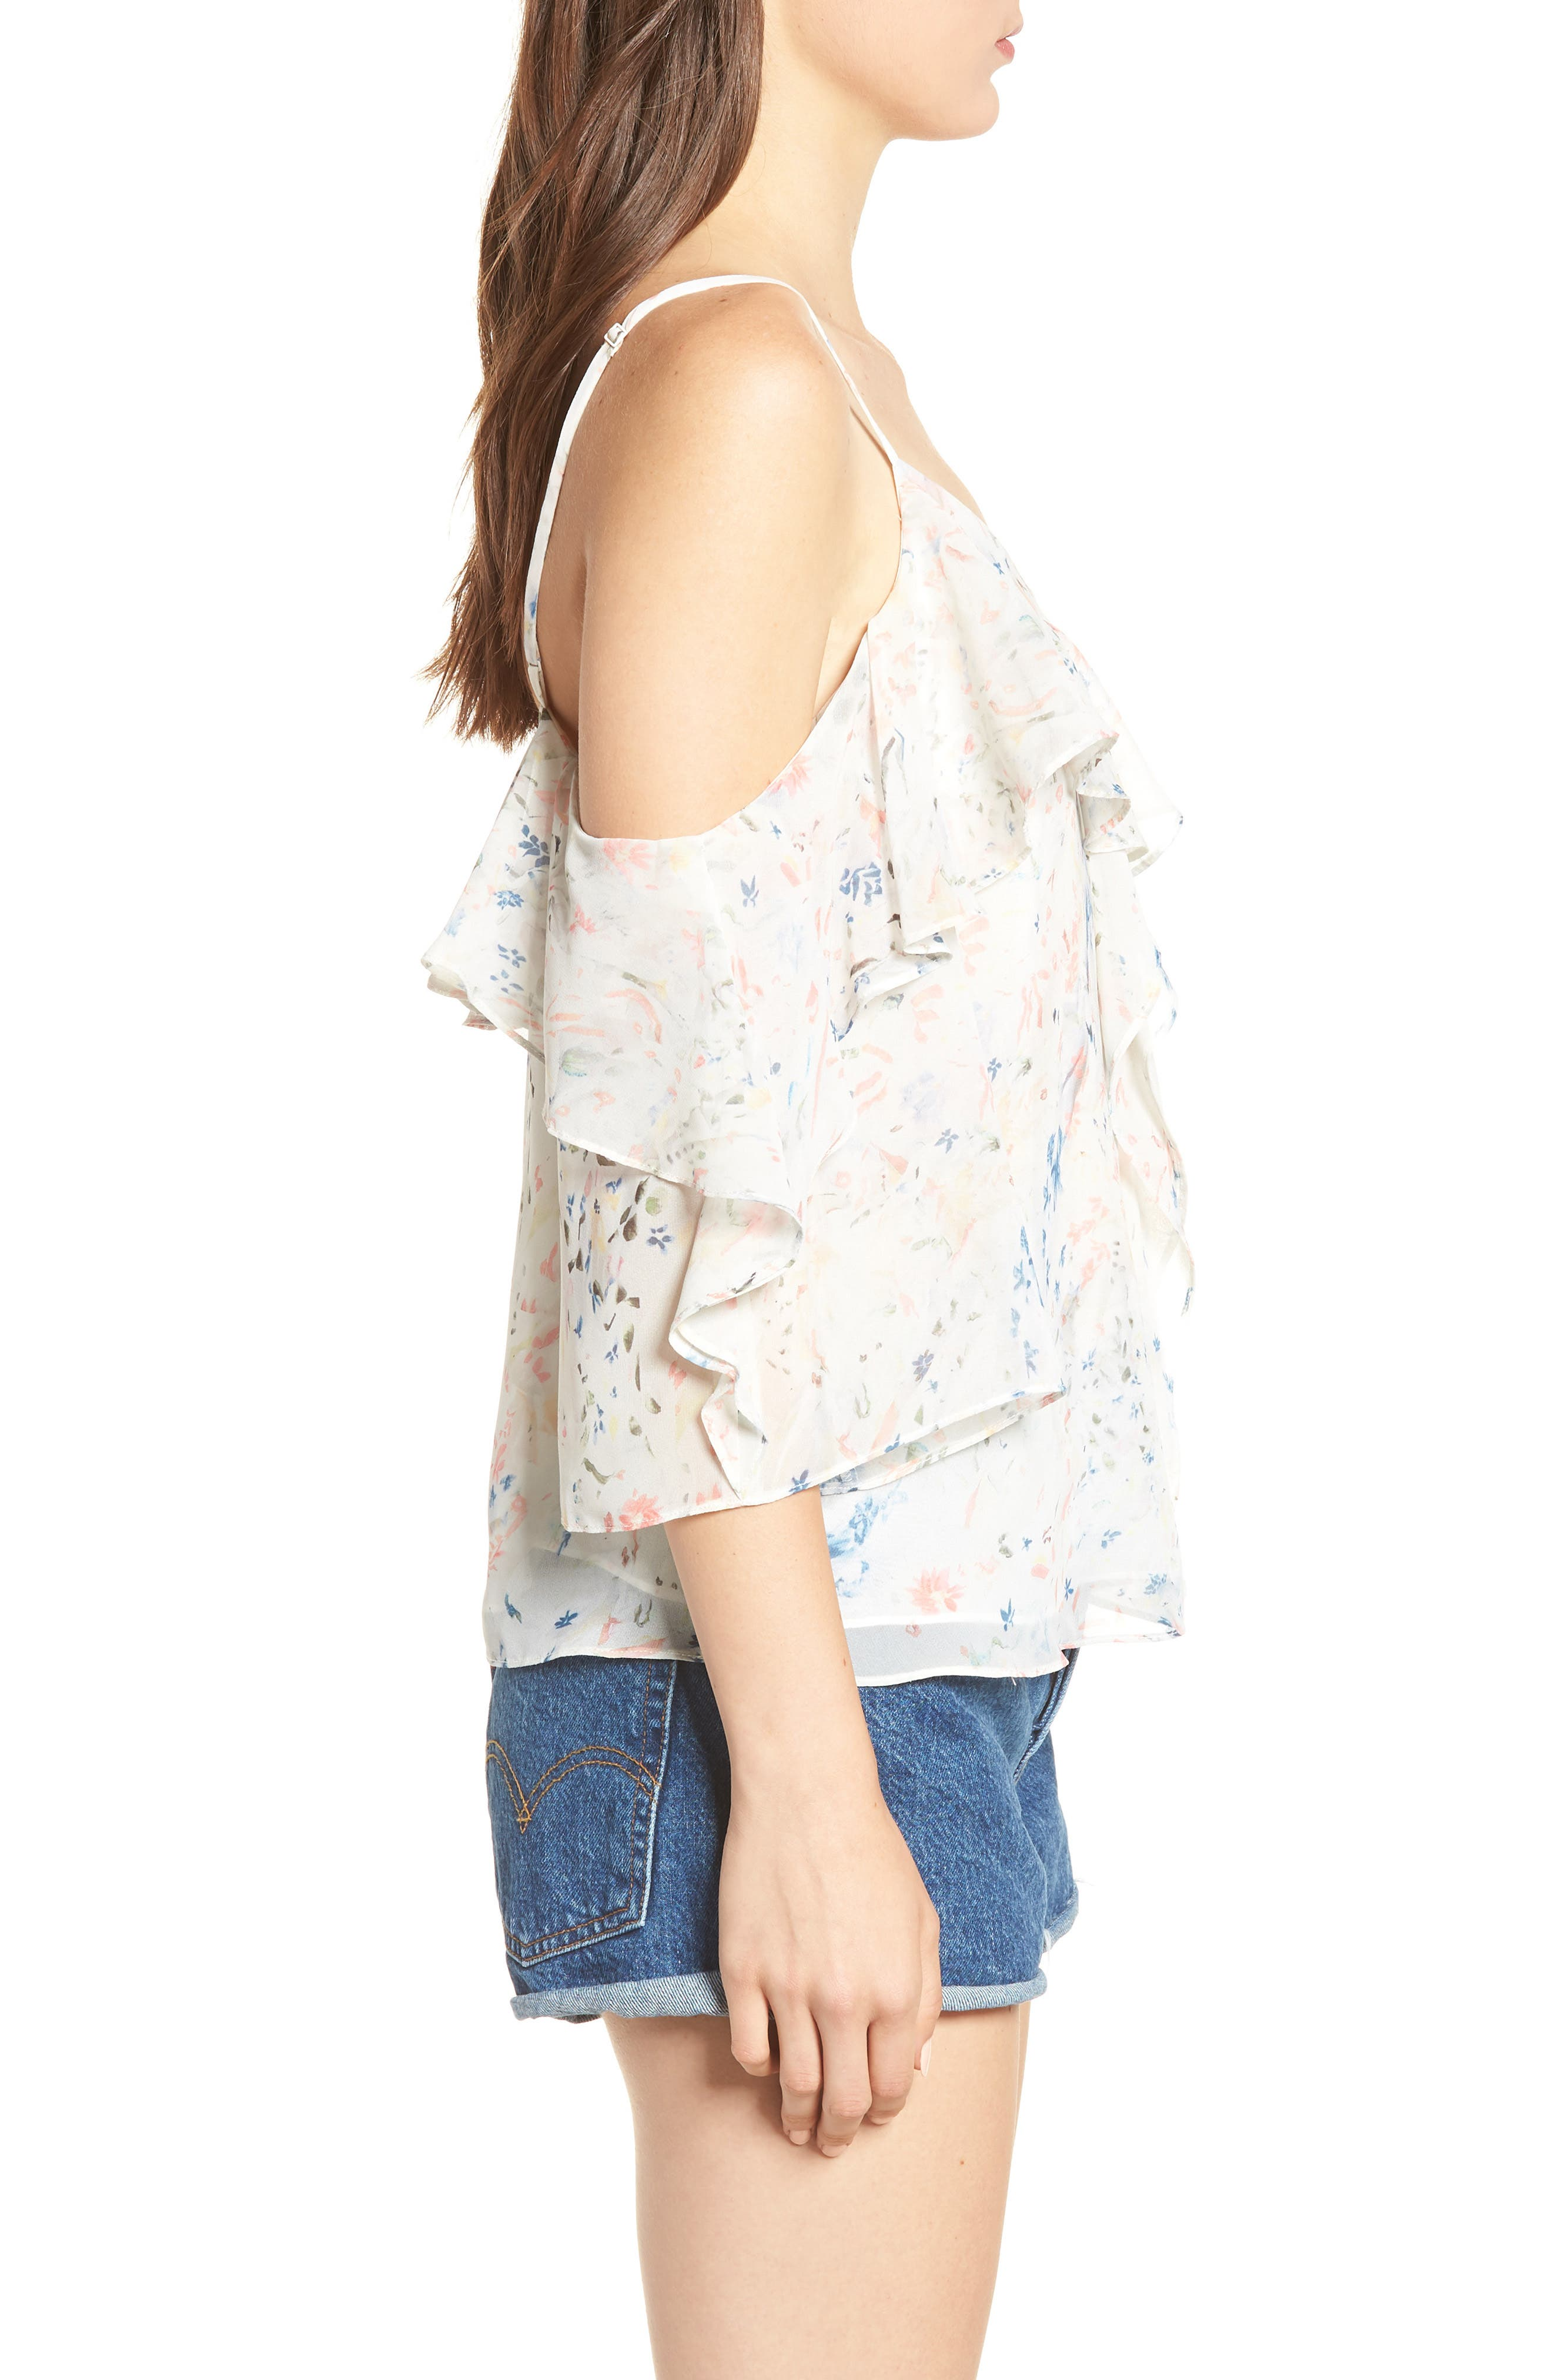 Jasmine Juni Top,                             Alternate thumbnail 3, color,                             Chalk White